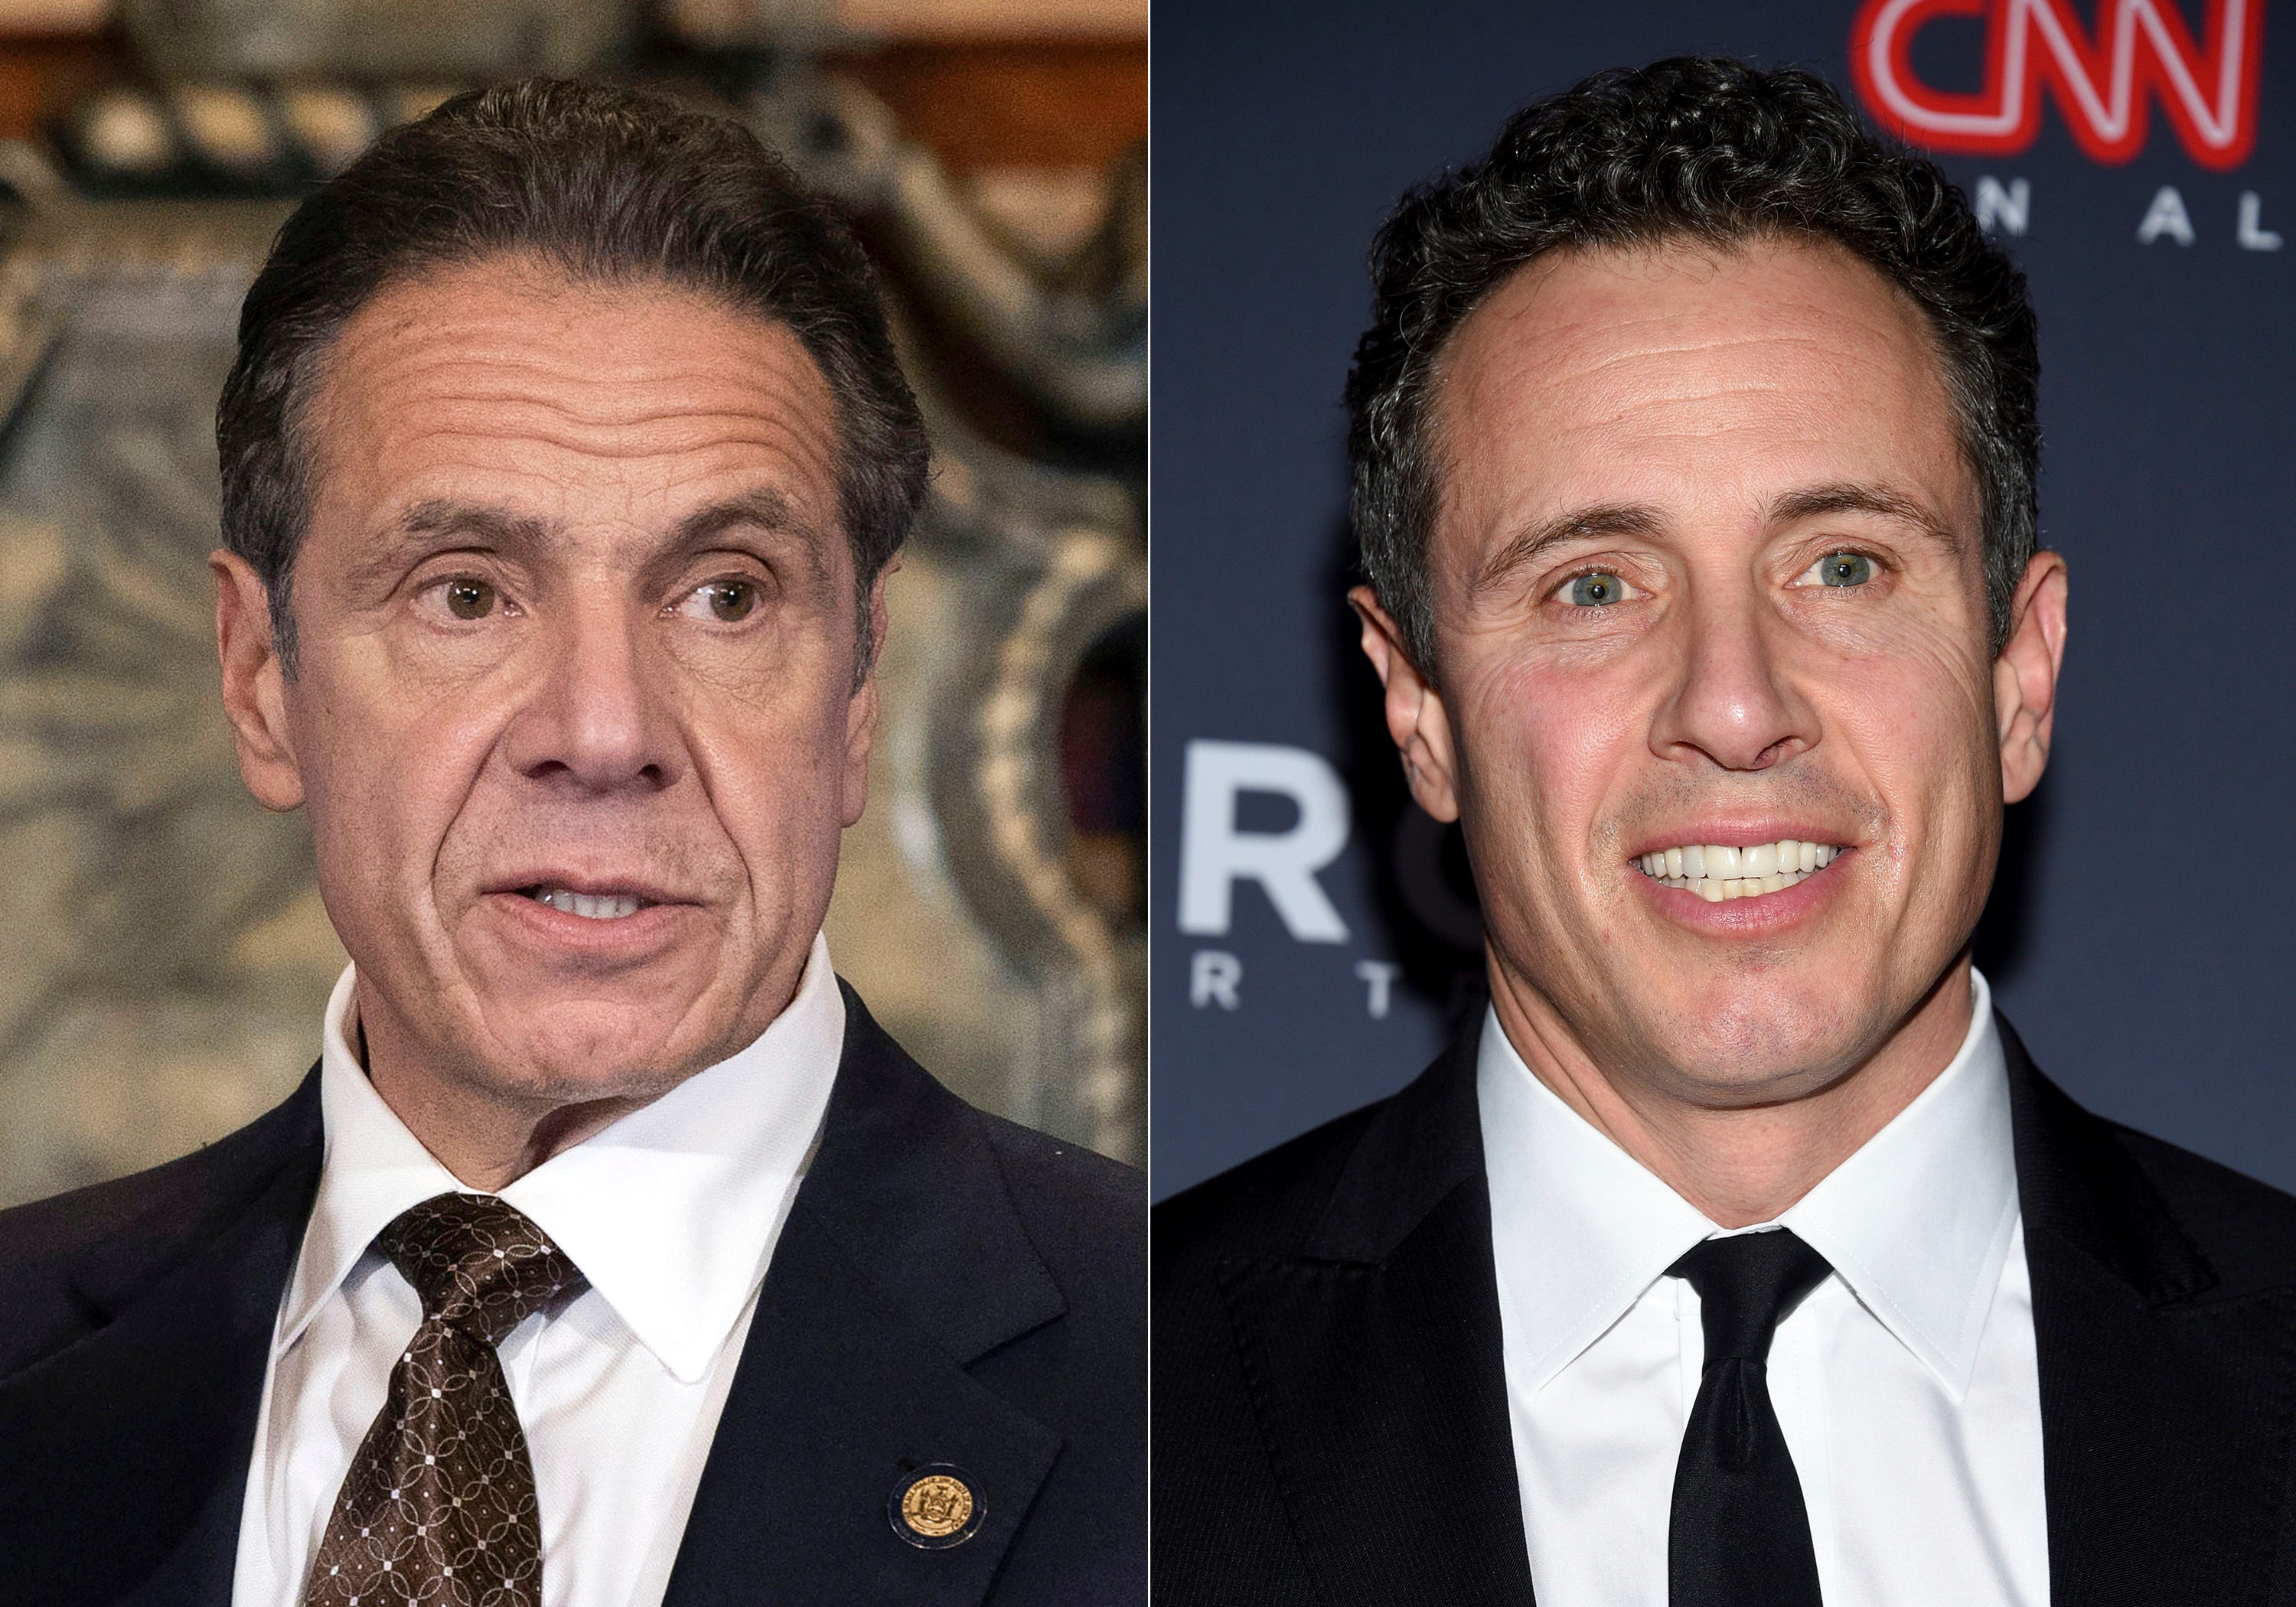 CNN s Chris Cuomo breaks silence on Andrew Cuomo resignation: What does anchor s future hold?